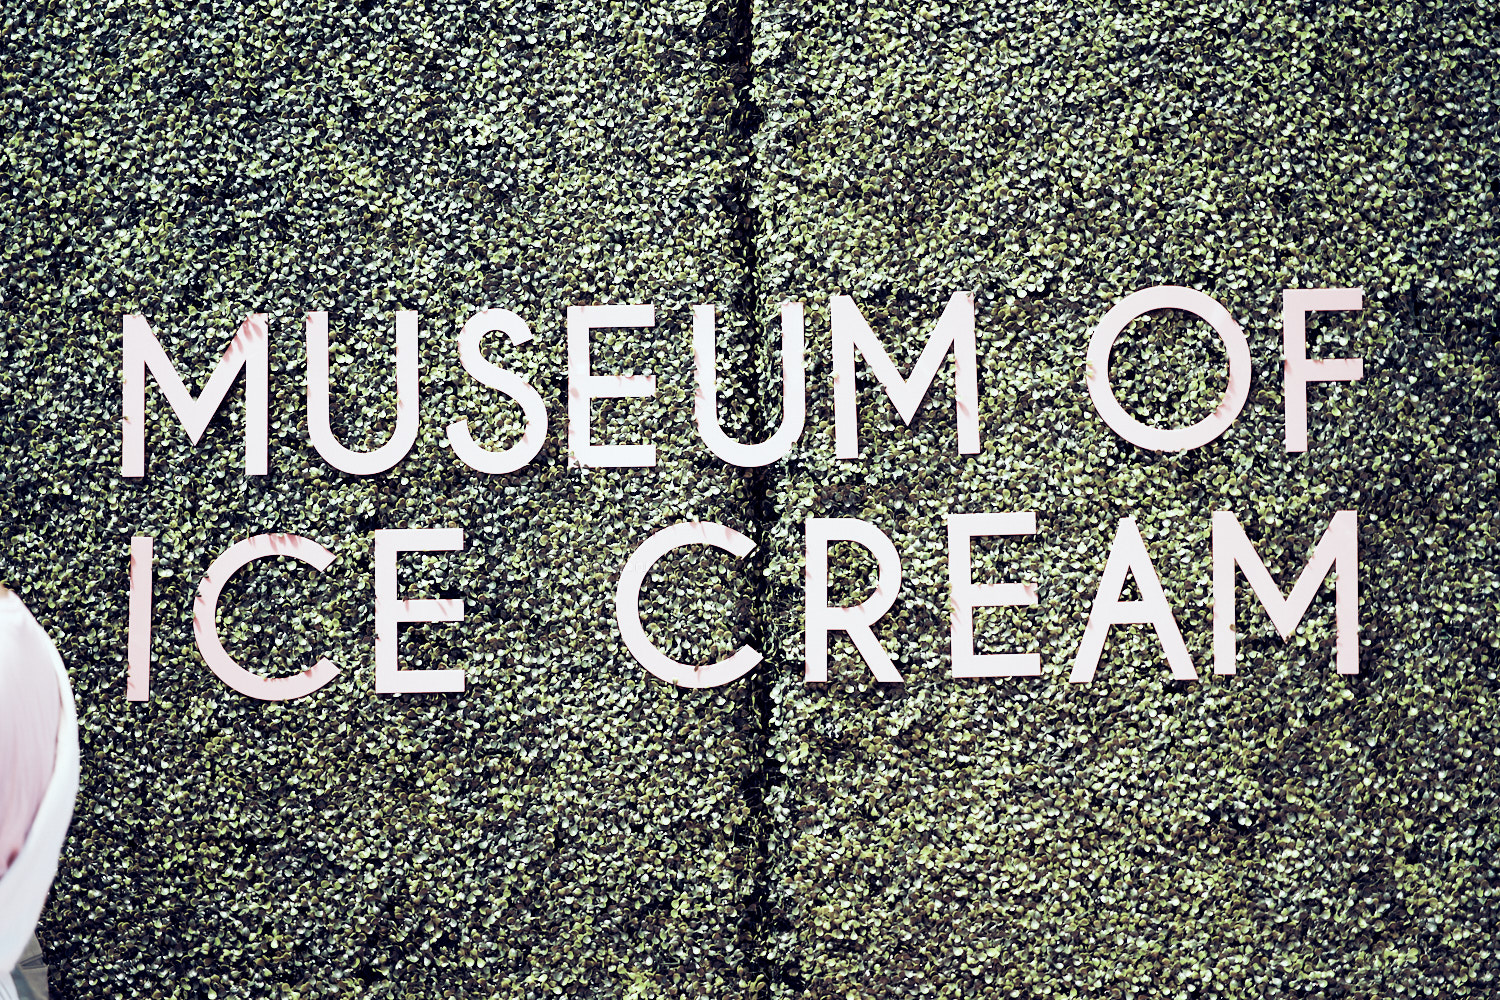 museum-of-icecream-eat-drink-sf-festival-event-photography-by-afewgoodclicks